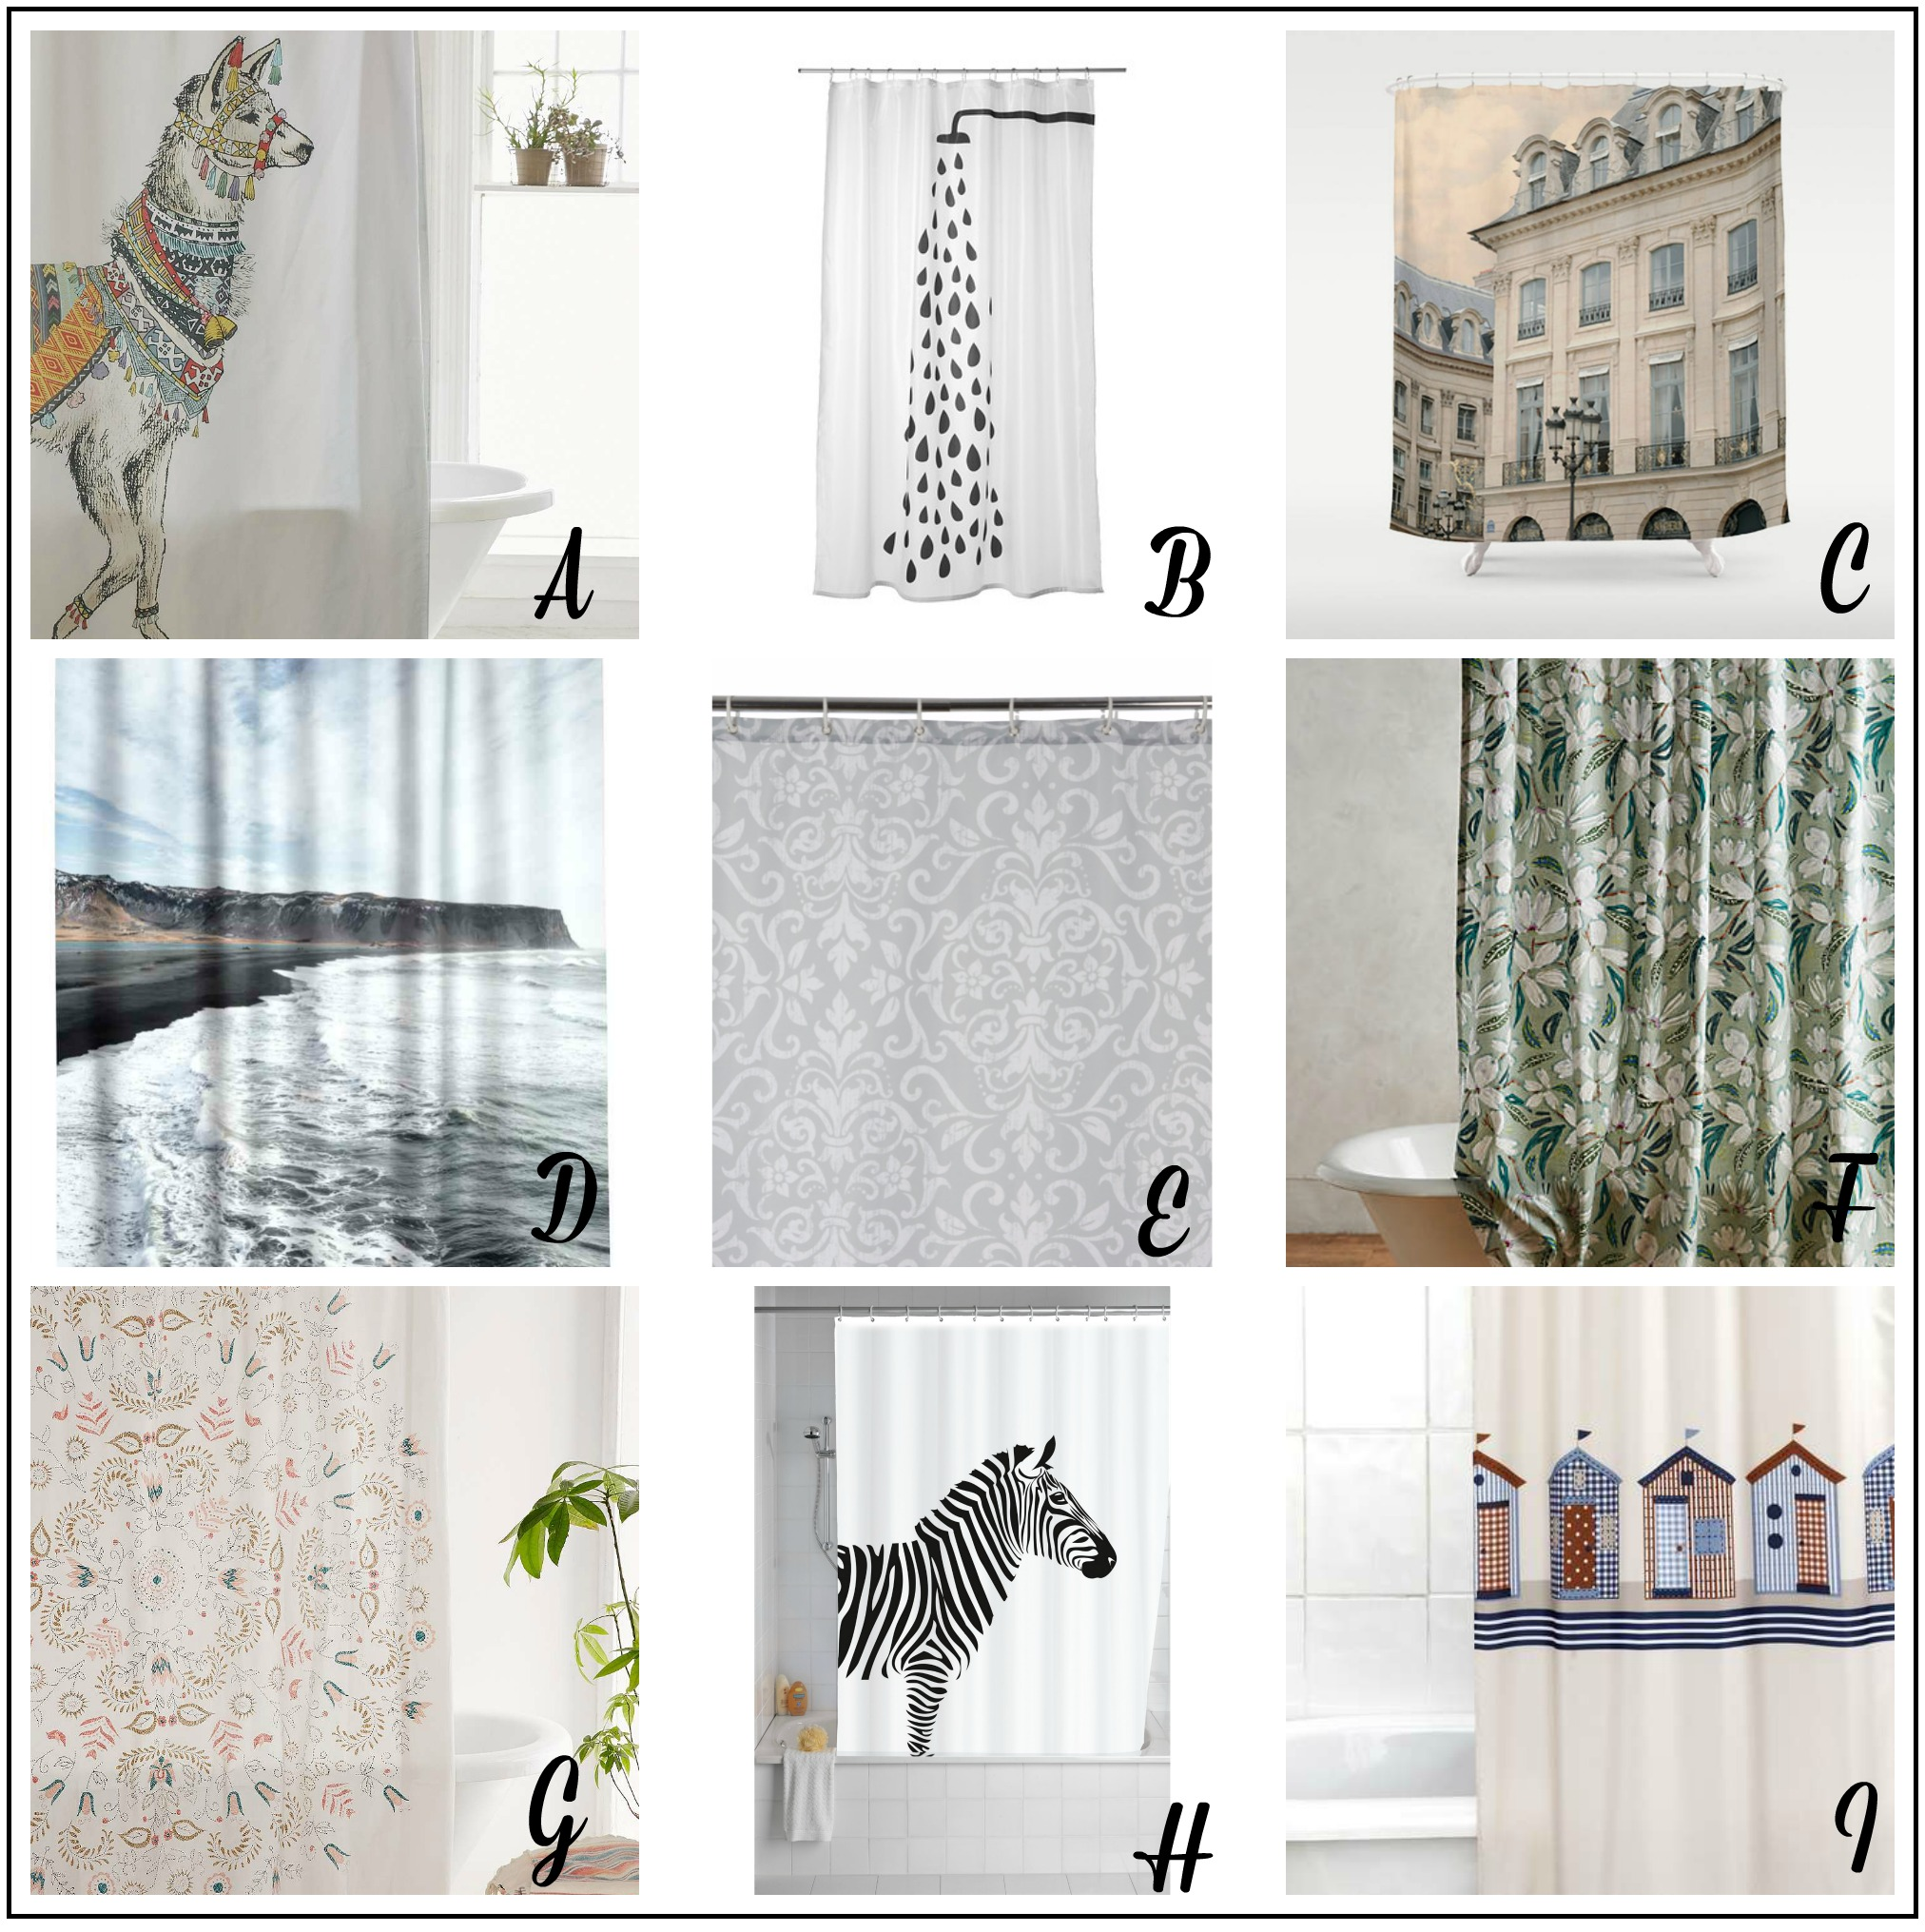 Shower In Style With A Fresh New Curtain Designs And Prices To Suit